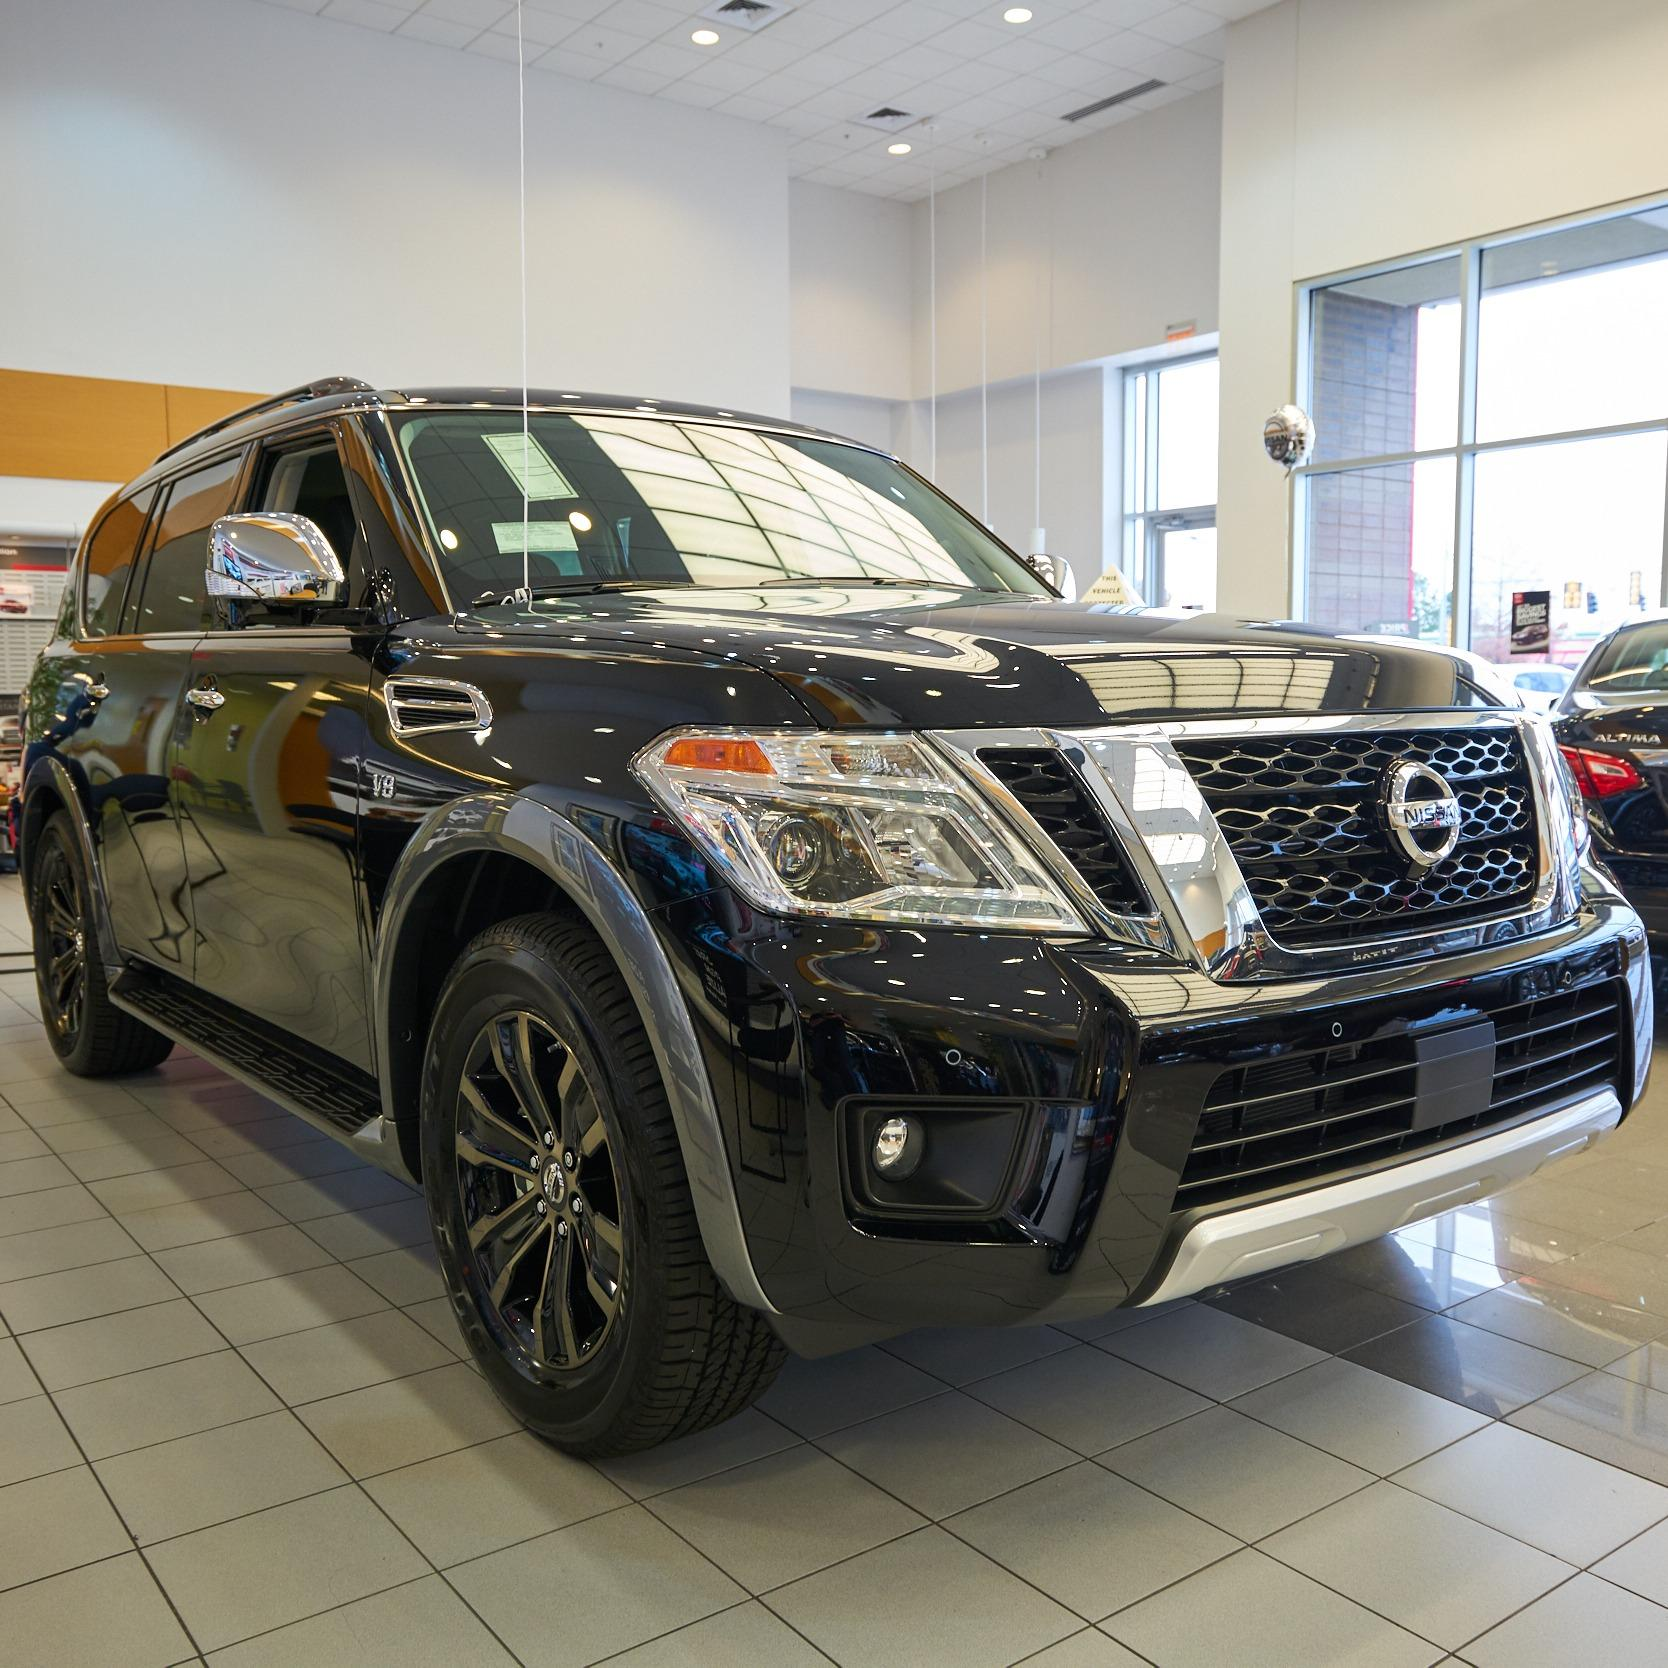 Nissan Car Dealerships Near Me: AutoNation Nissan Memphis Coupons Near Me In Memphis